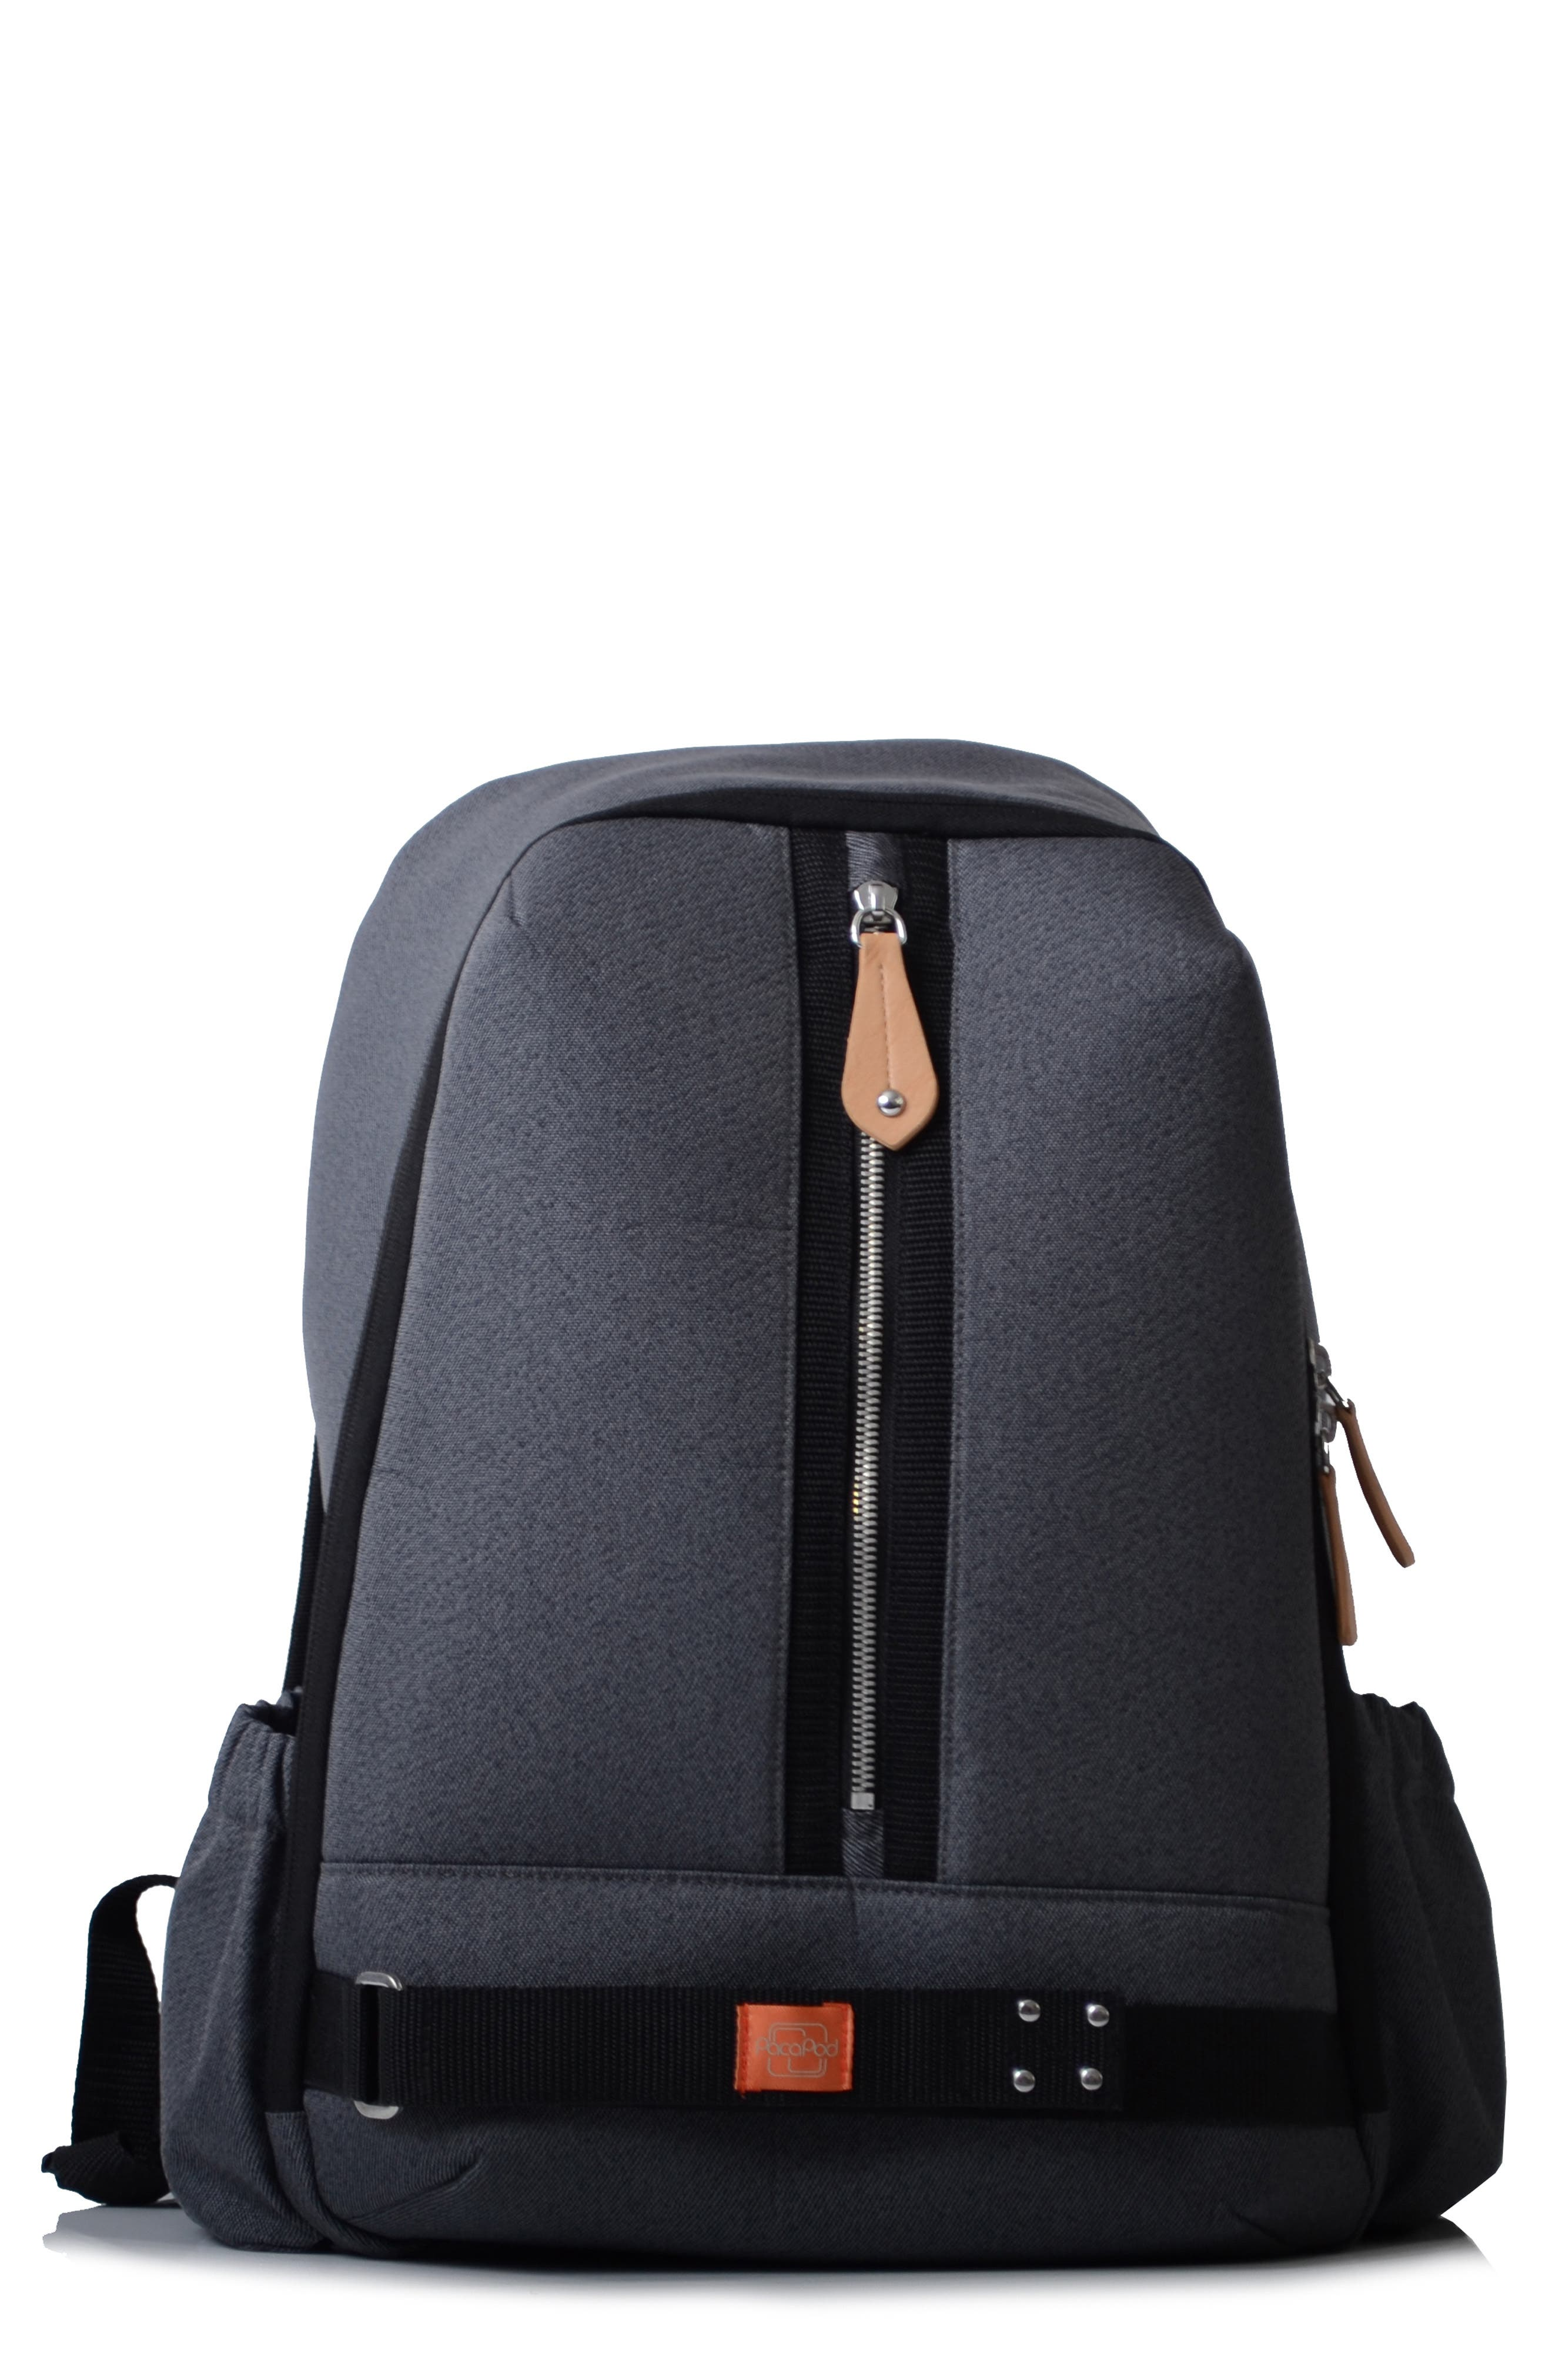 Picos Pack Diaper Backpack,                         Main,                         color, Black Charcoal